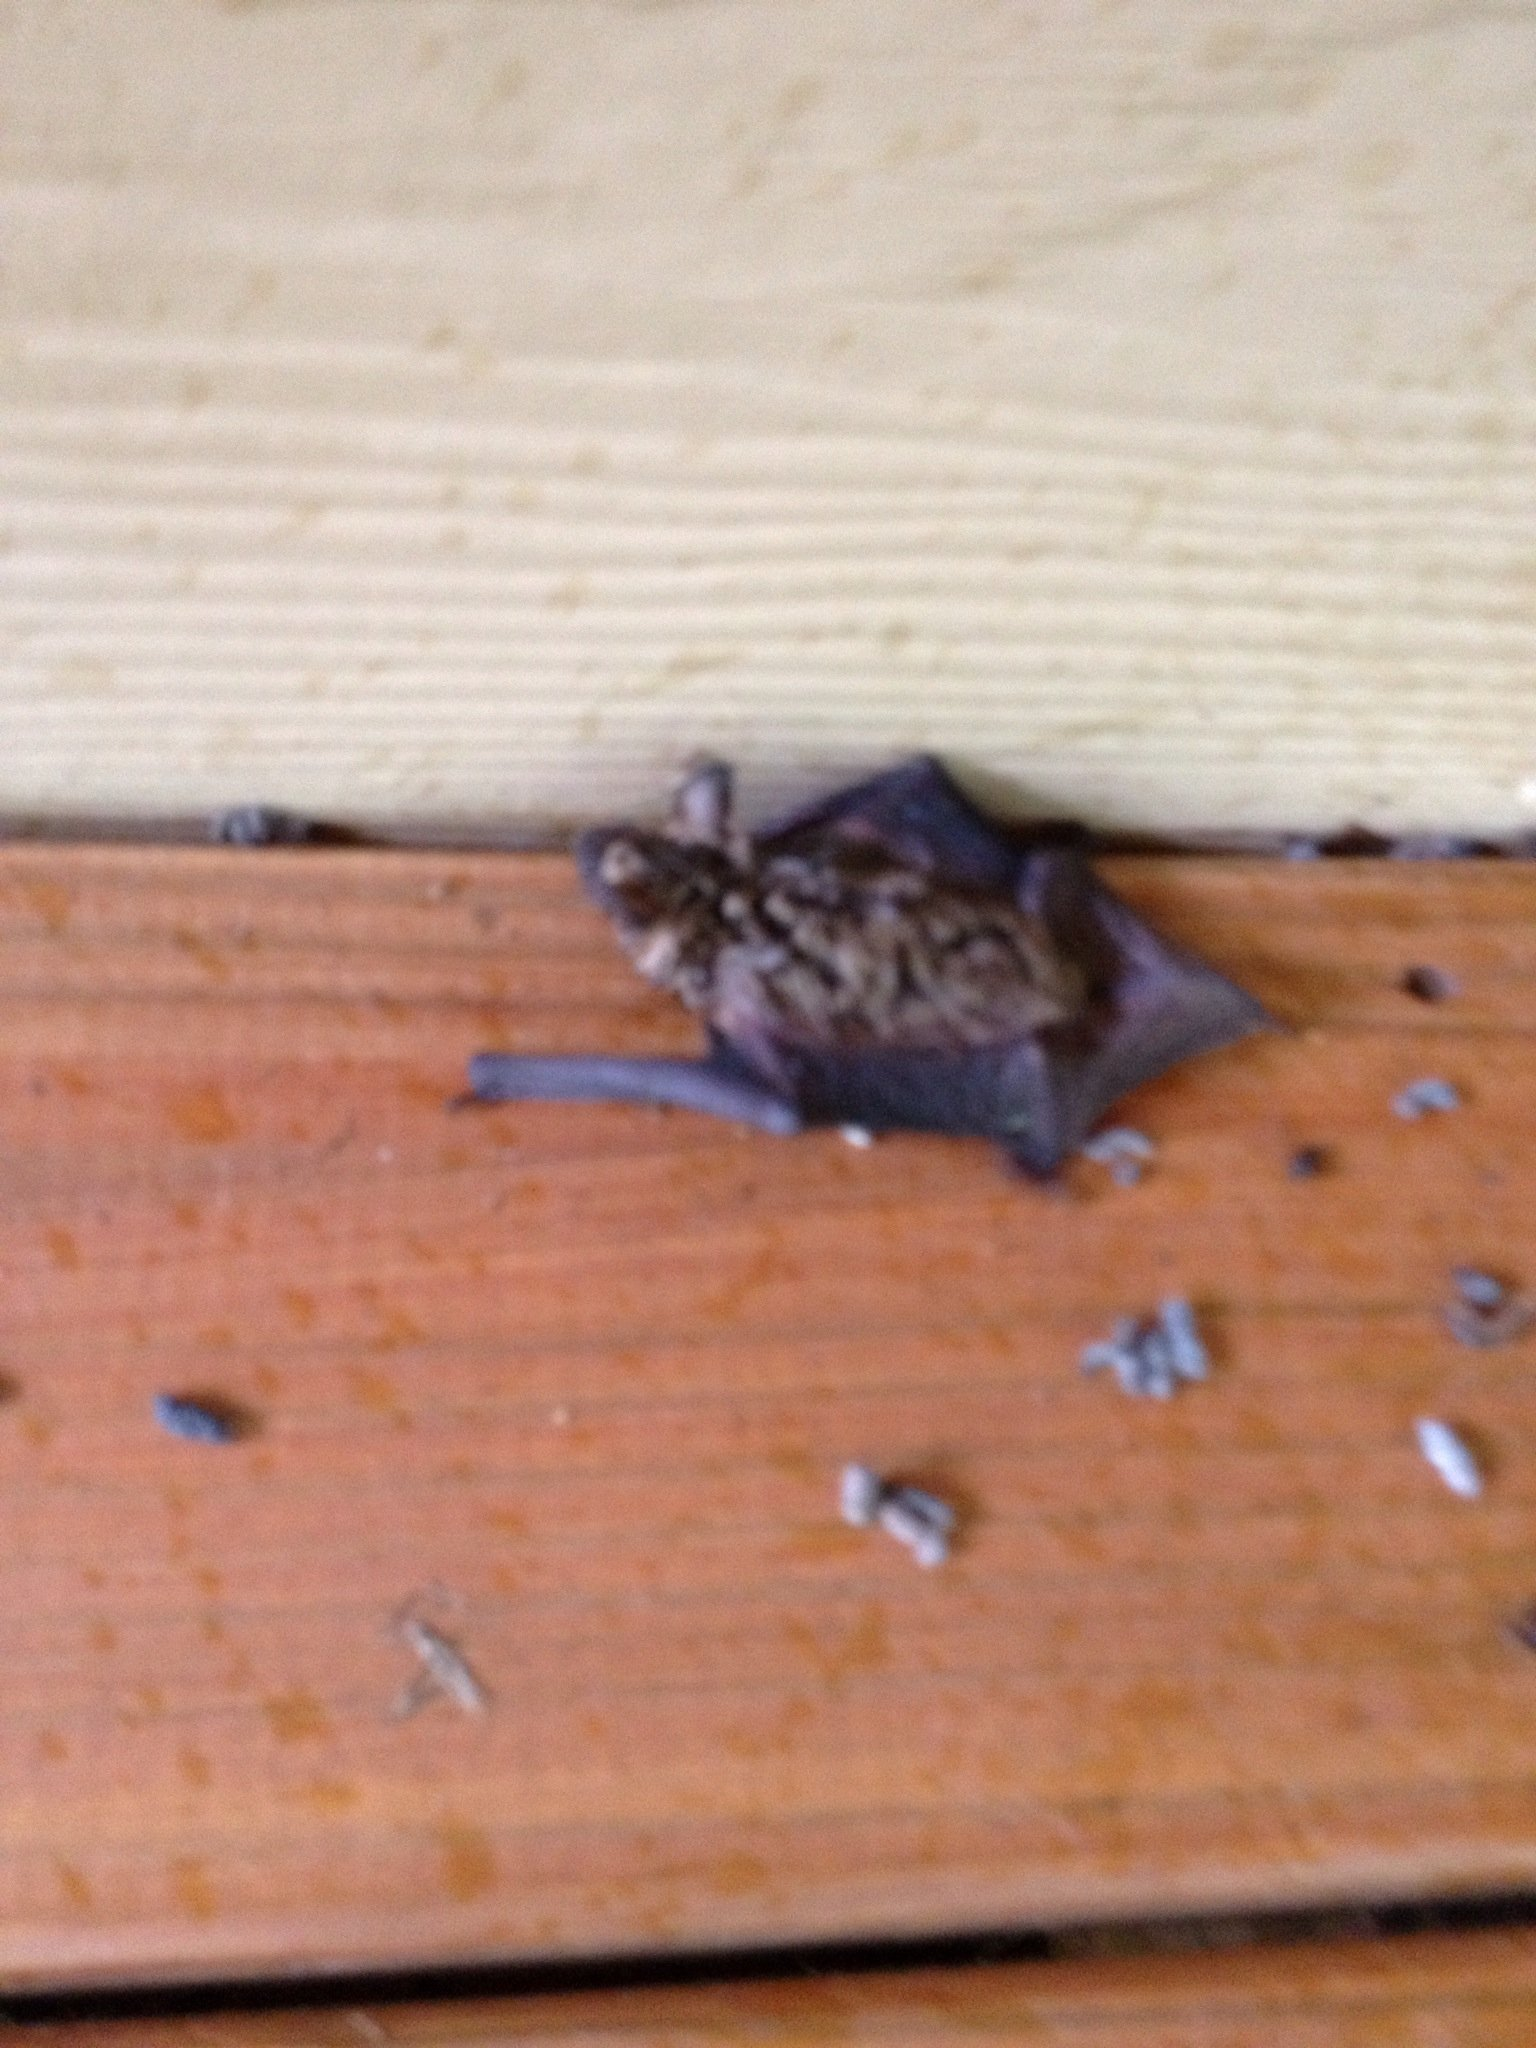 Bats under deck in Cumming GA